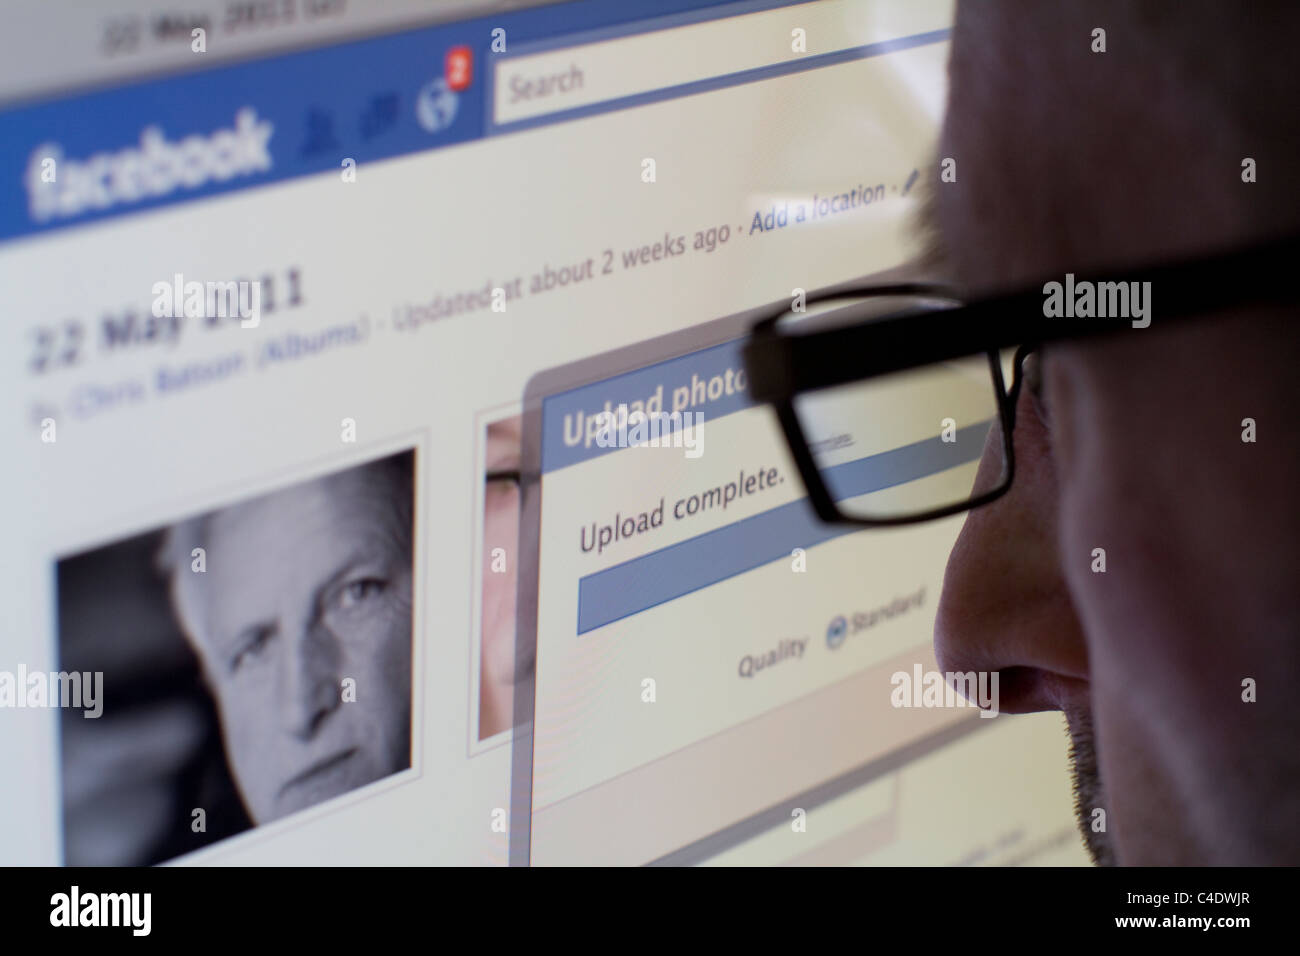 Uploading photos to facebook, facebook now employs face recognition software - Stock Image